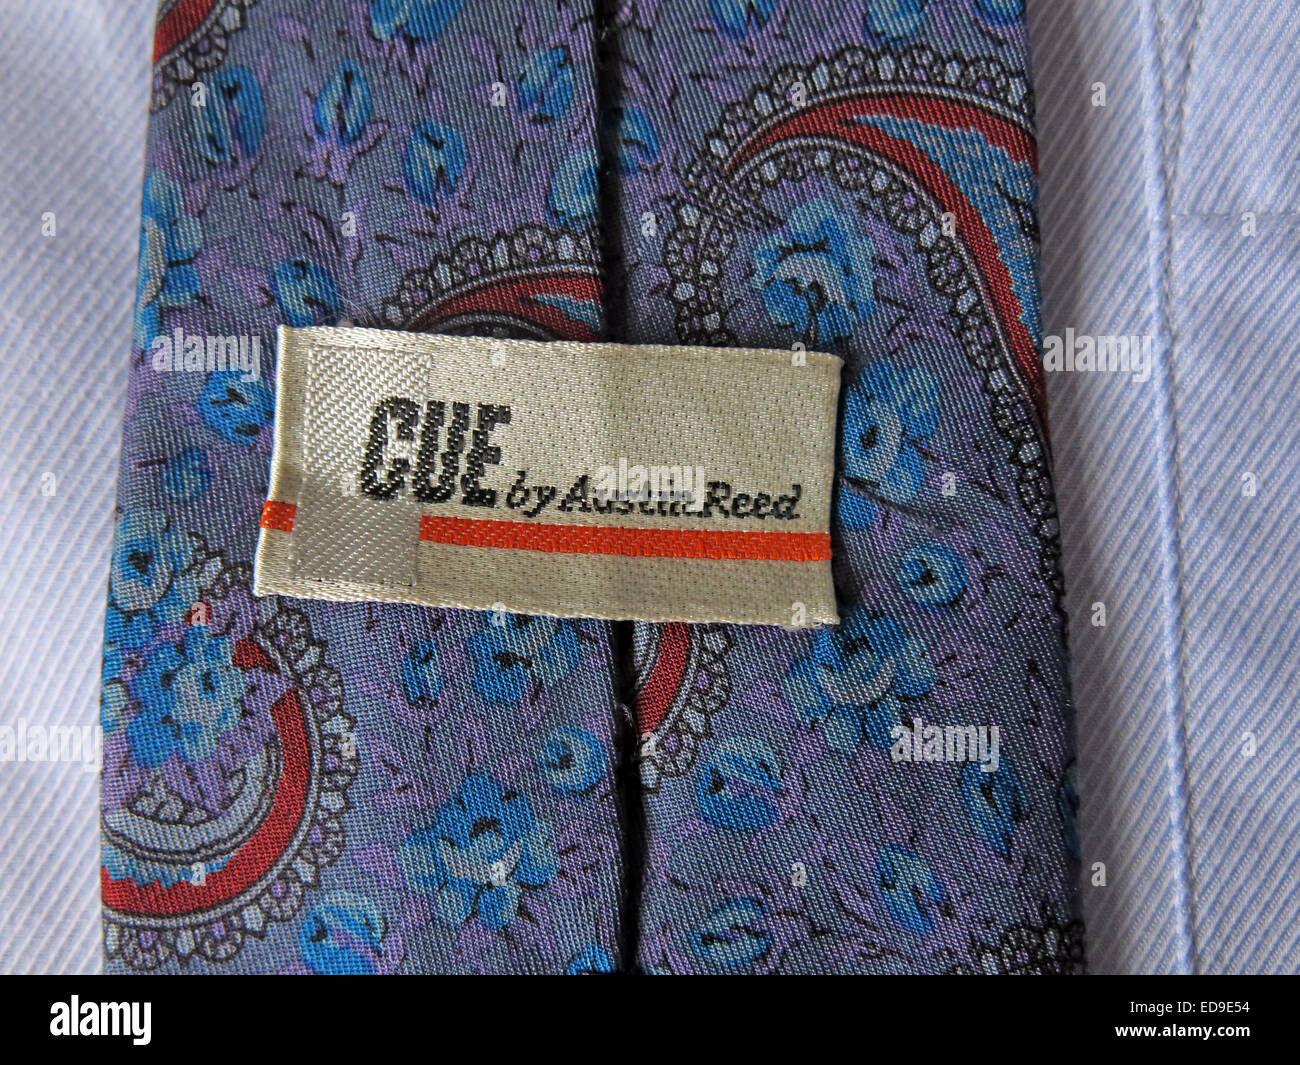 Interesting vintage Austin Reed 1970s Cue tie, male neckware in silk - Stock Image